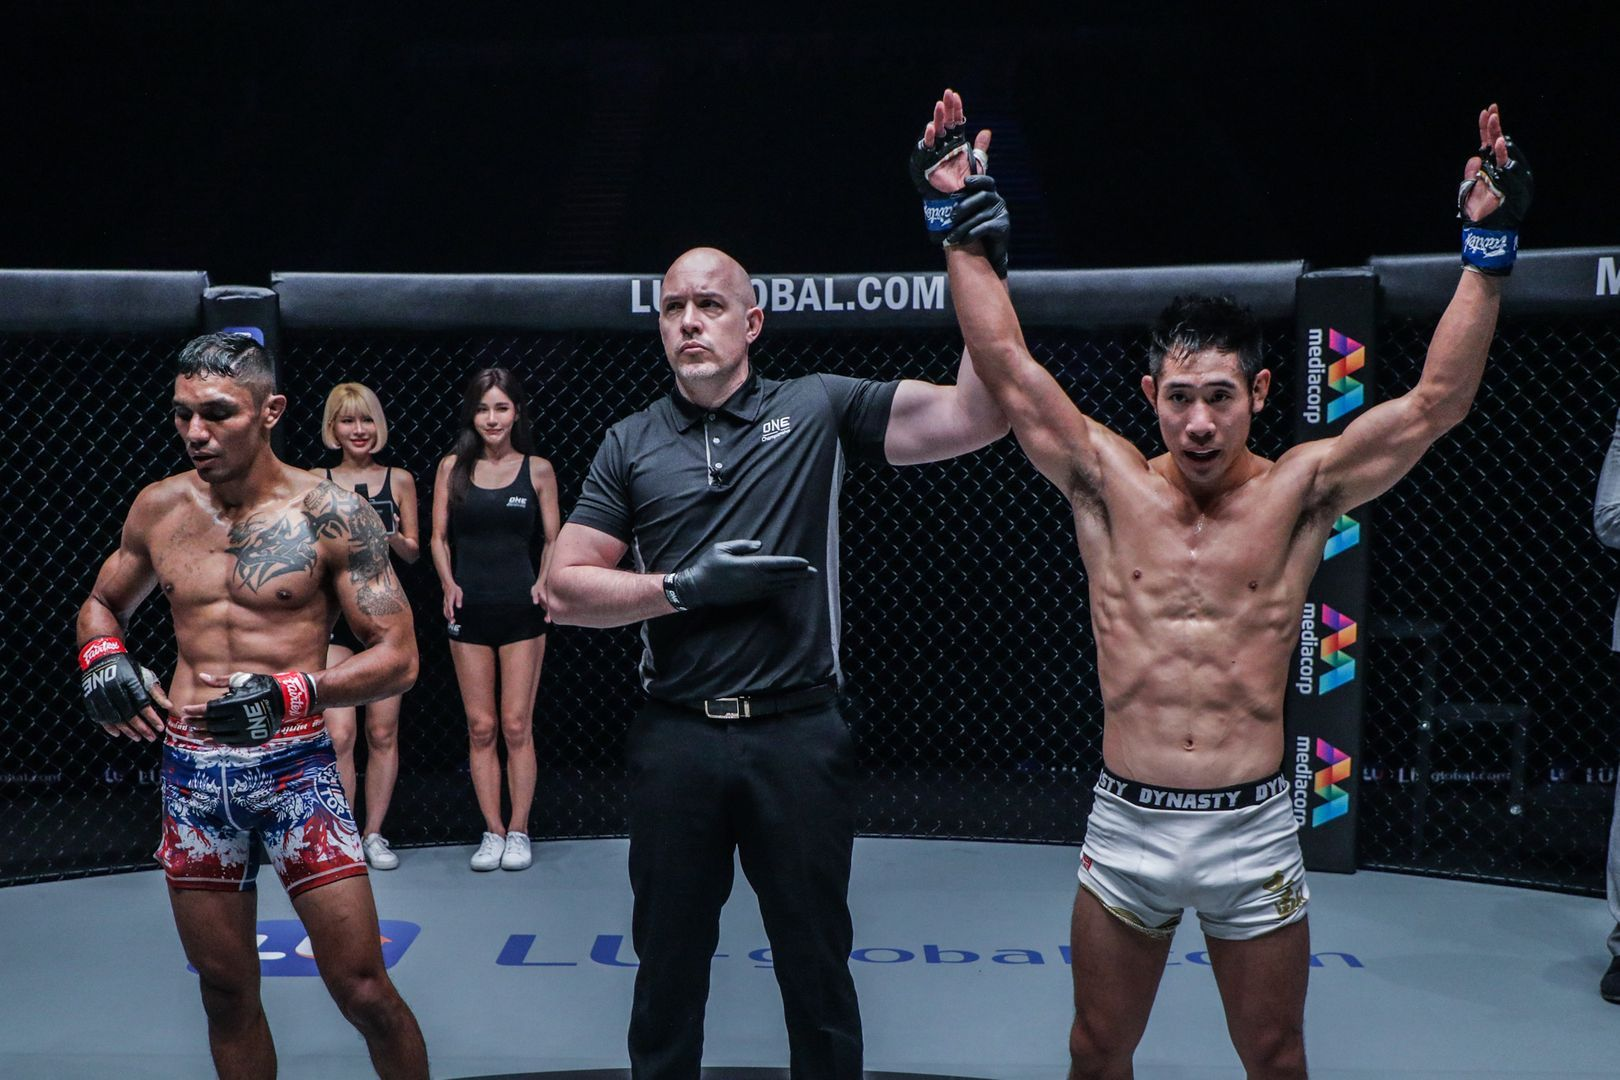 Jeff Chan from MMA Shredded celebrates his submission win against Radeem Rahman